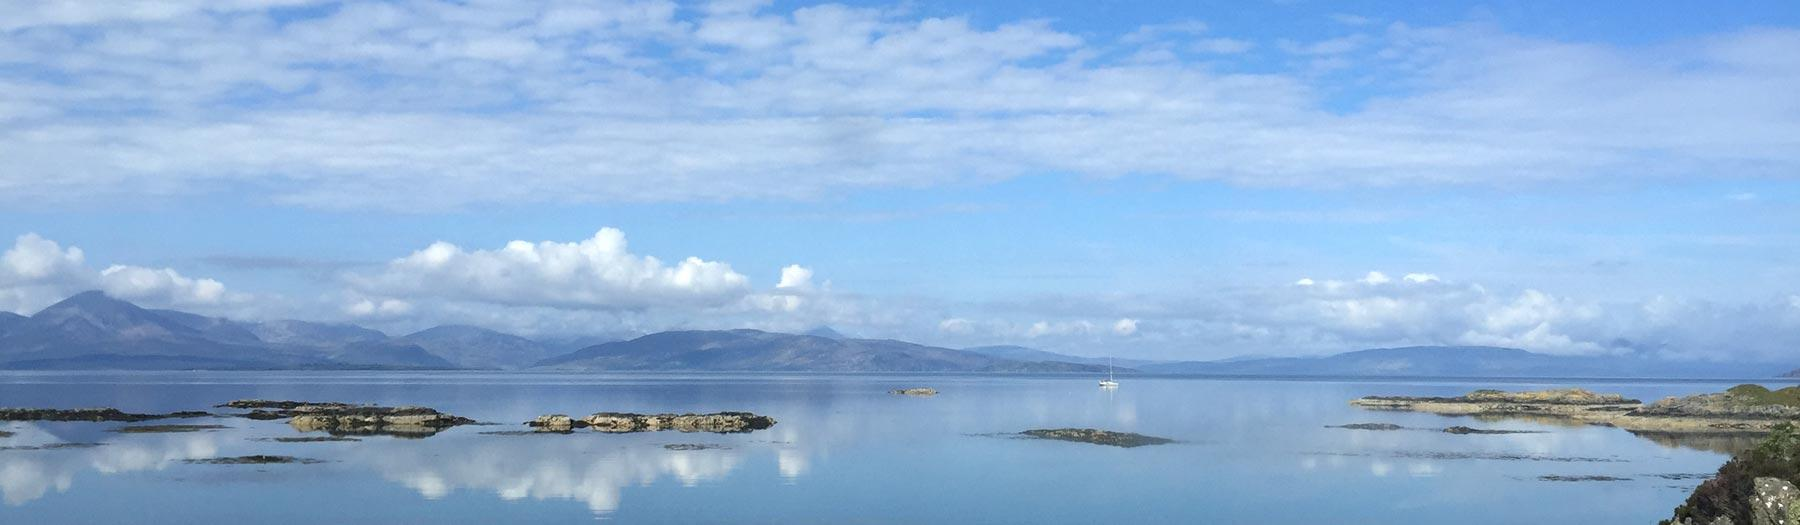 View of Skye from a train on the Kyle Line